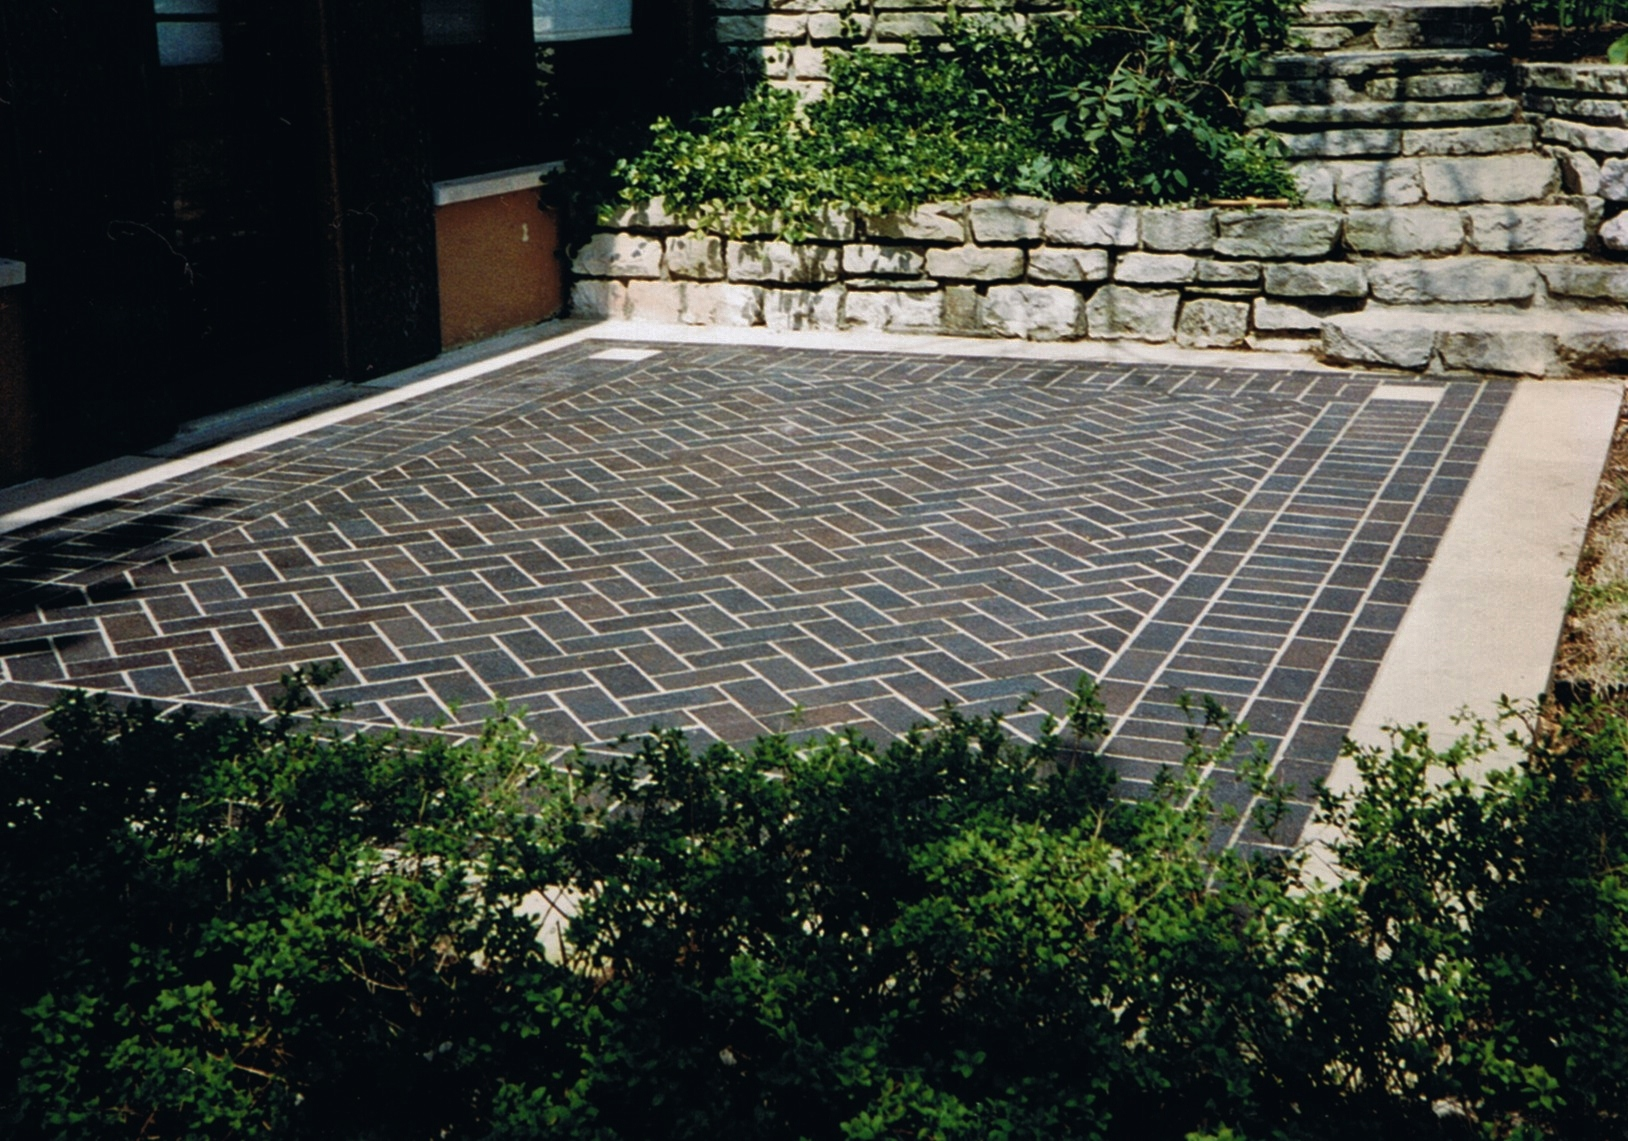 Patio Brick Herringbone.jpg